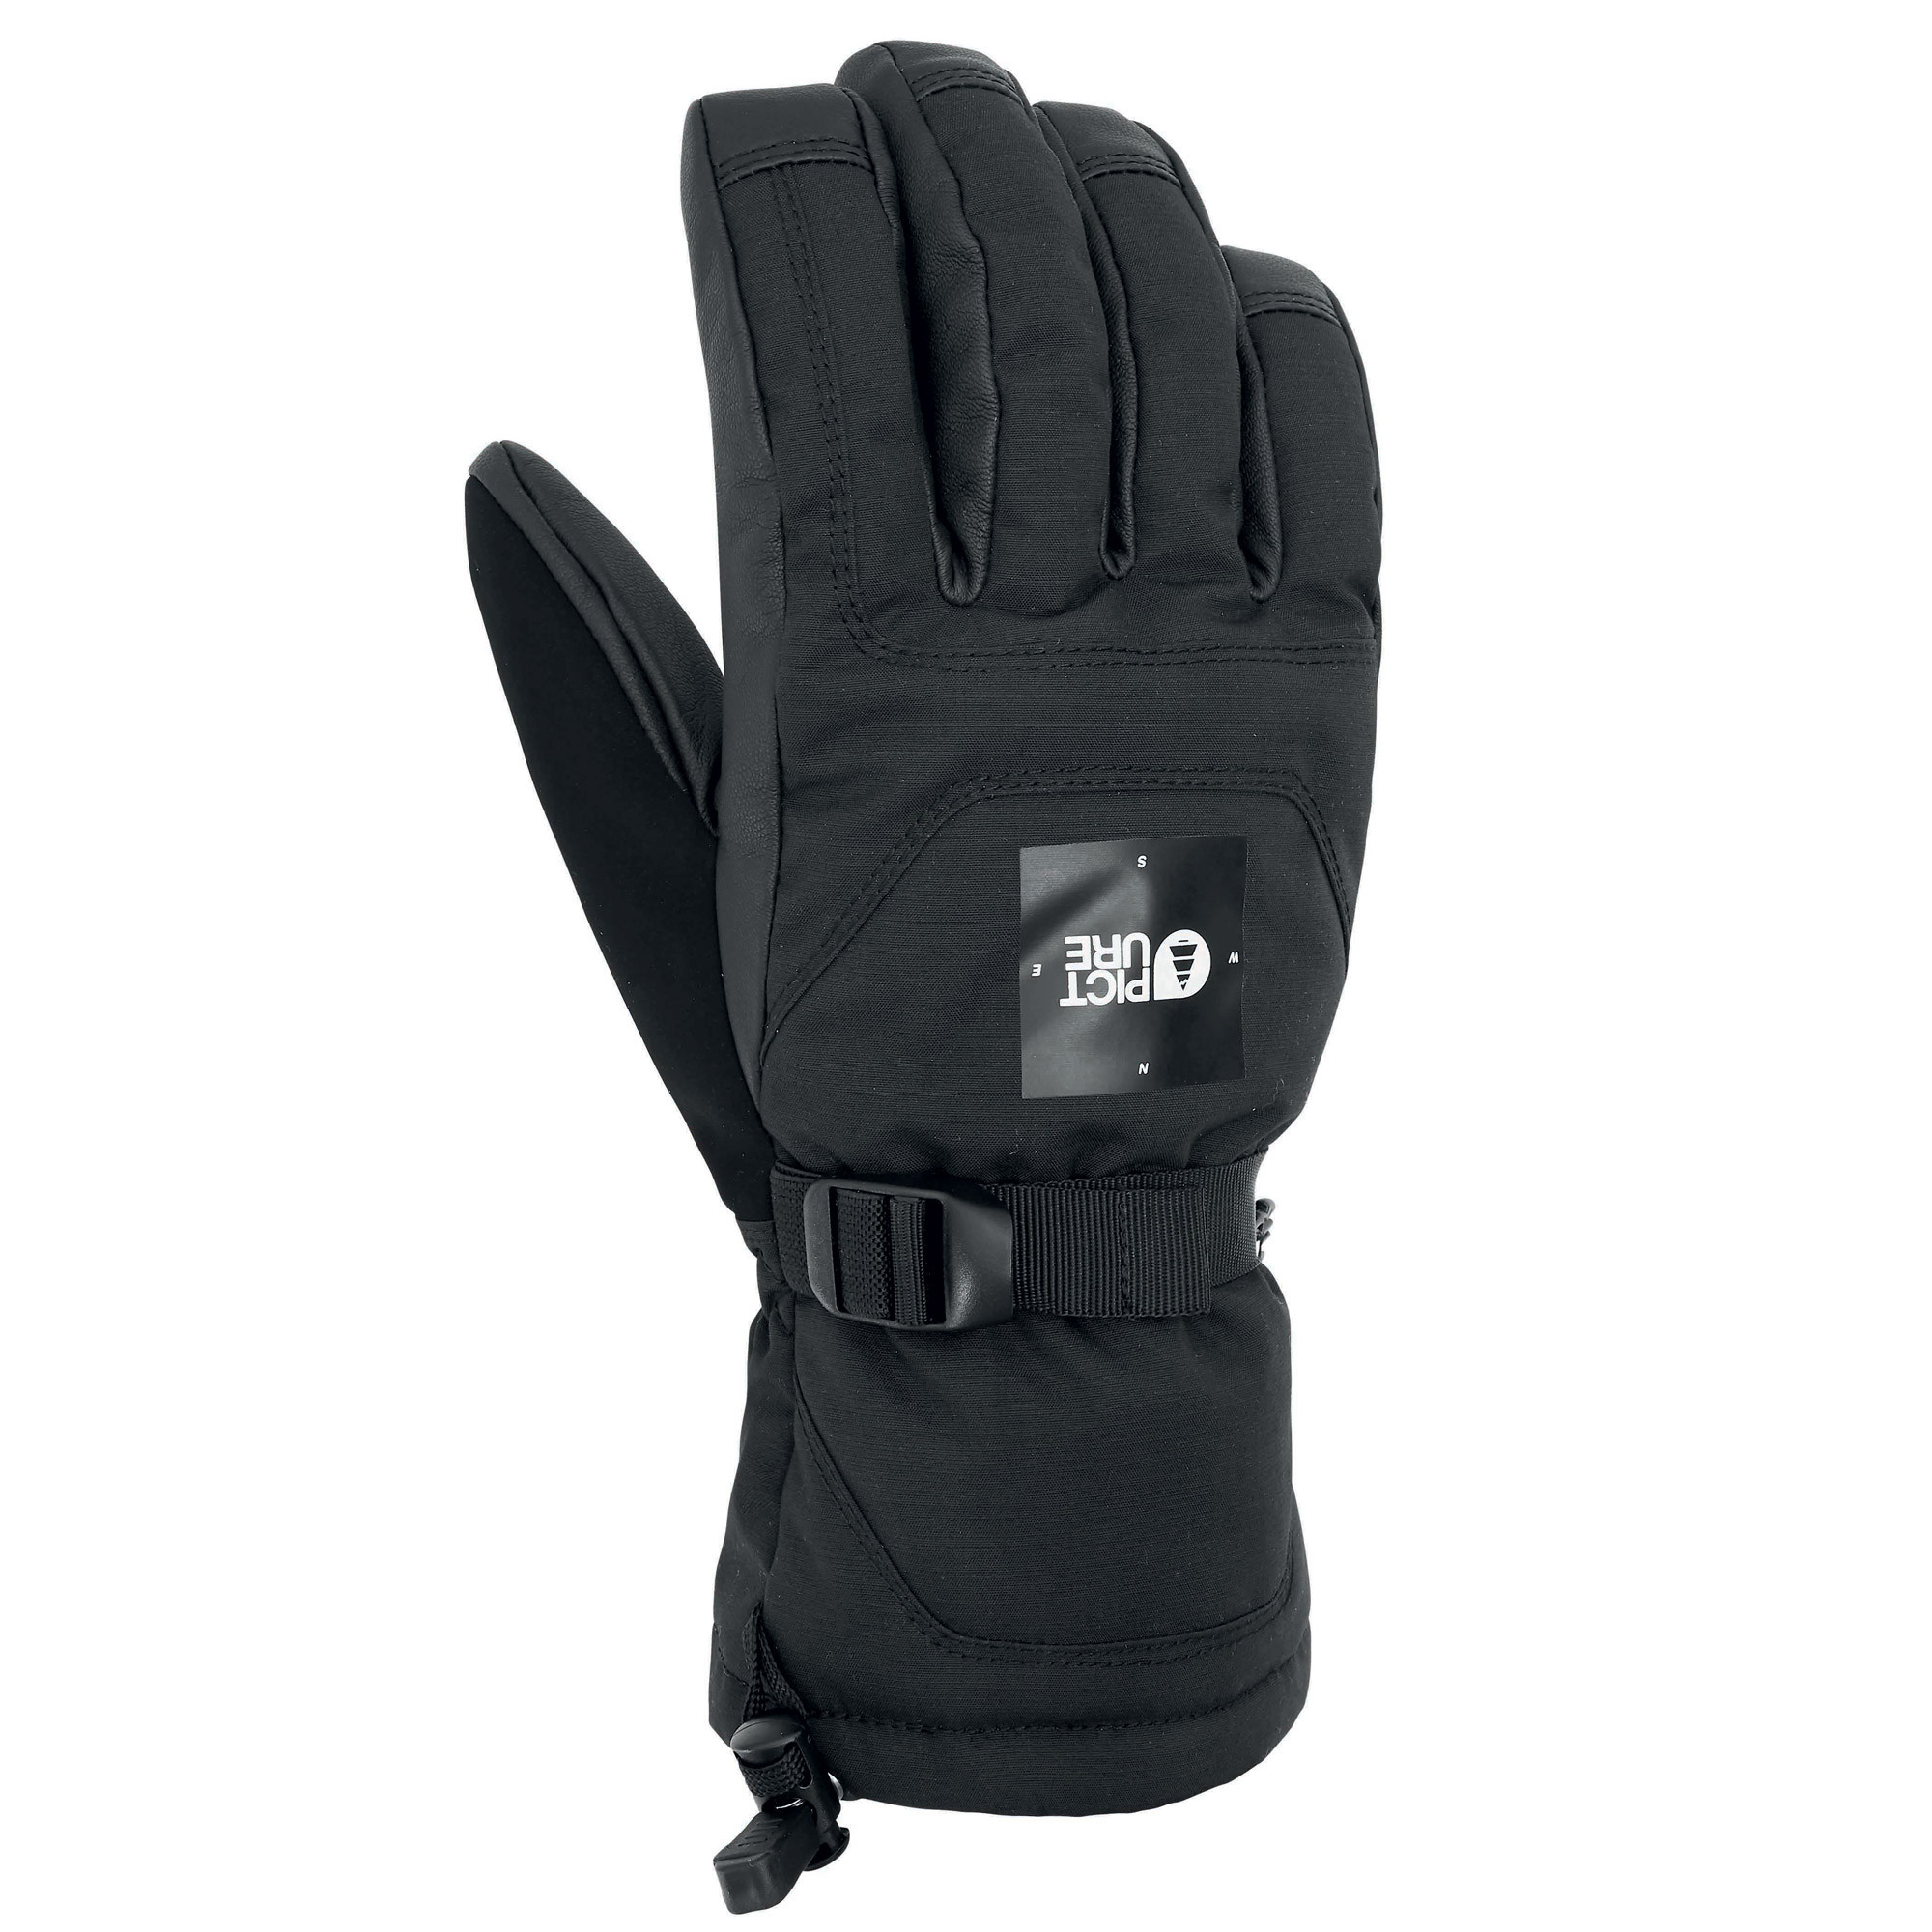 Gants de Ski Mankota - Black